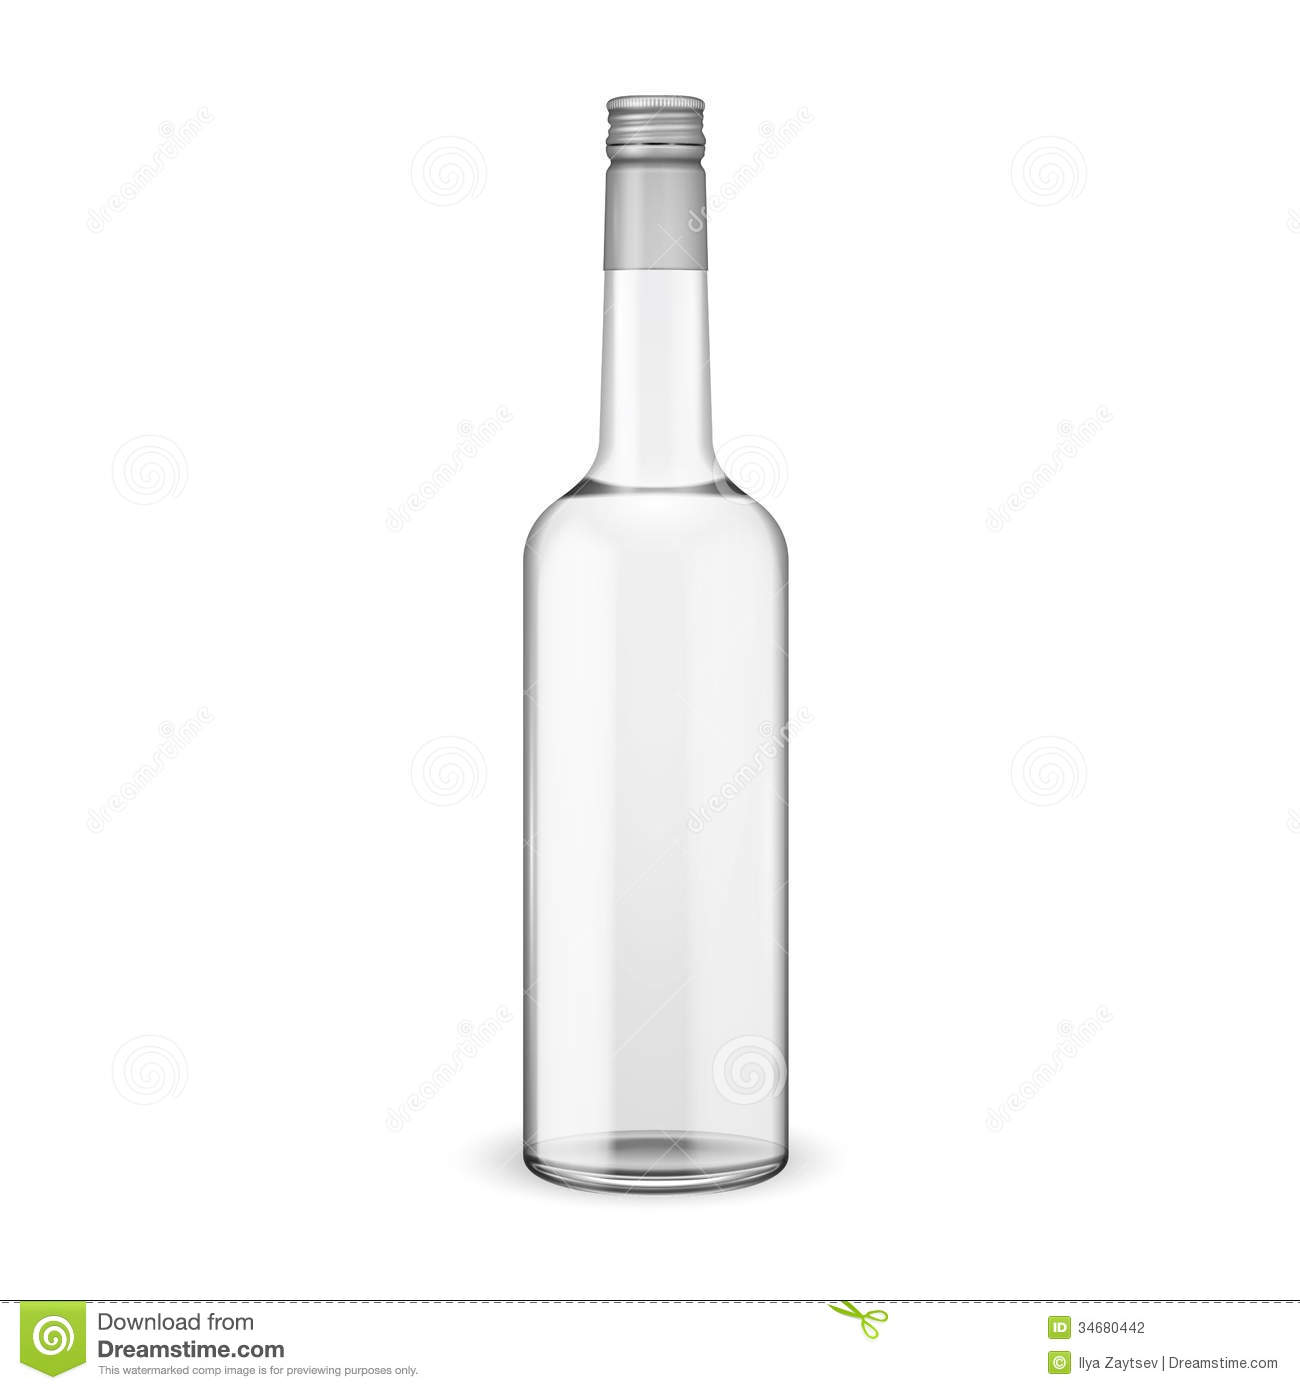 Alcohol clipart vodka bottle. Flask